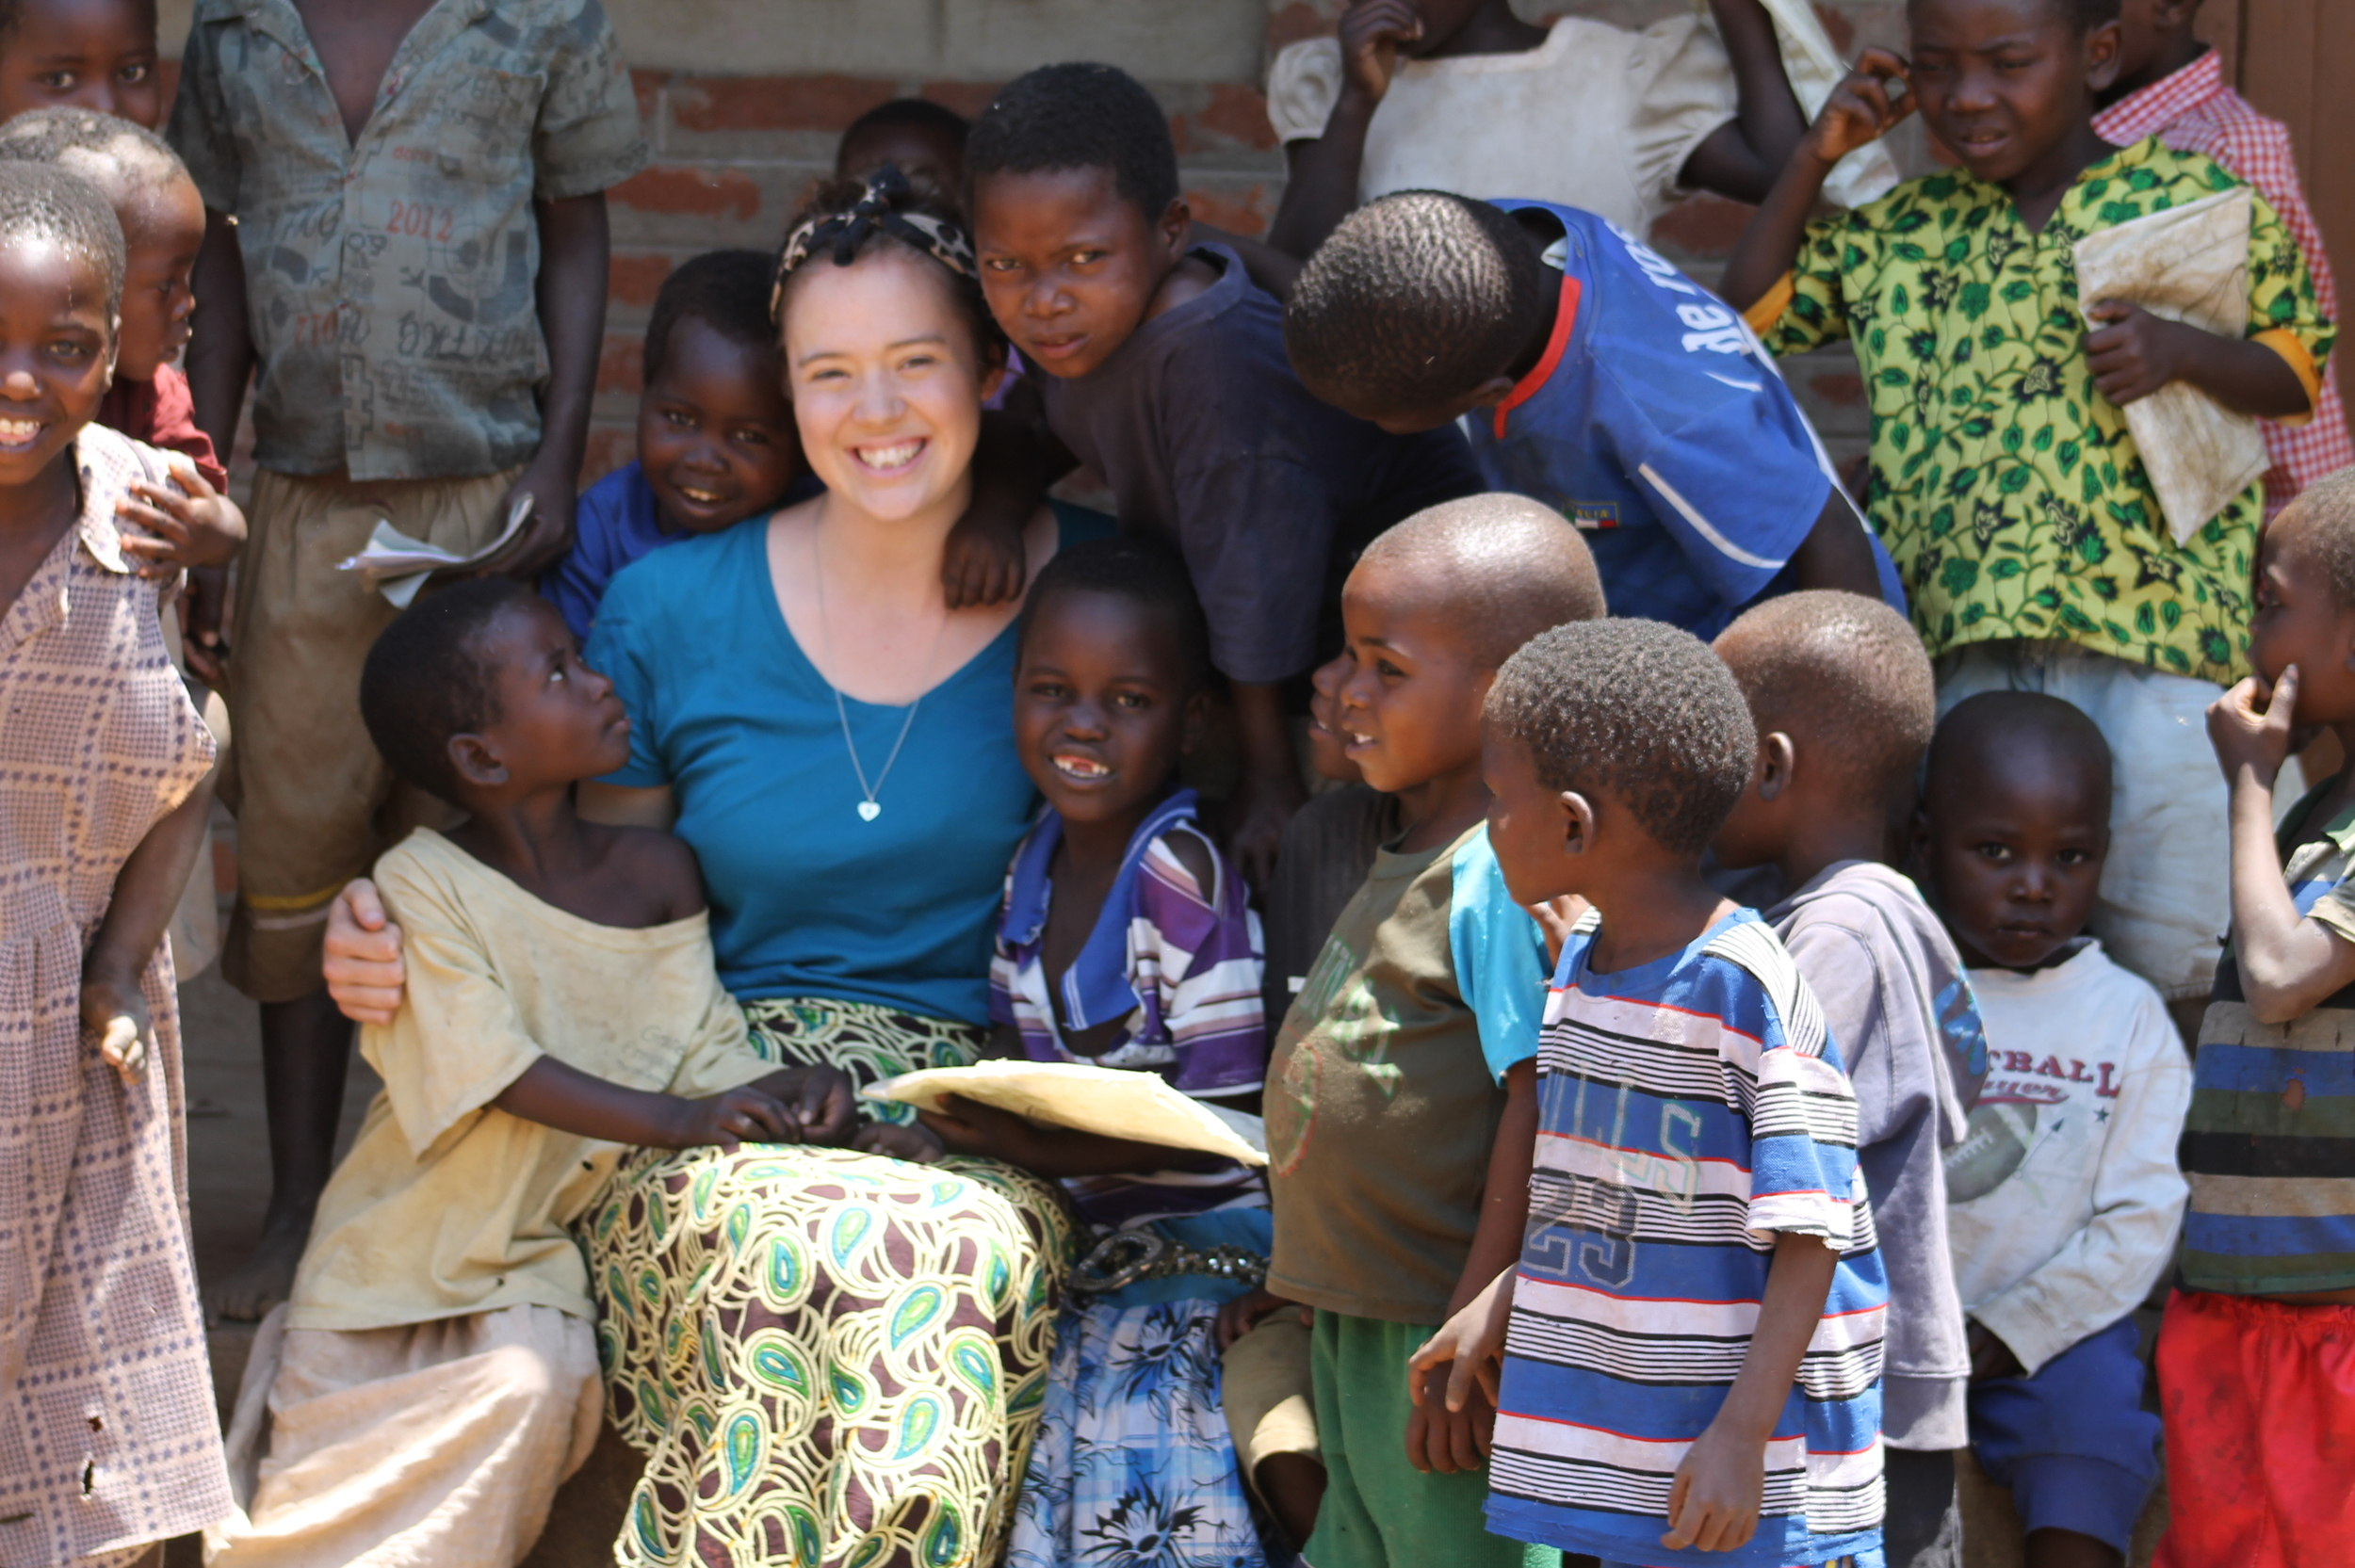 Goodbyes are hard. I left a portion of my heart in Malawi but God has shown me how to take action and be whole even while I am across the world.